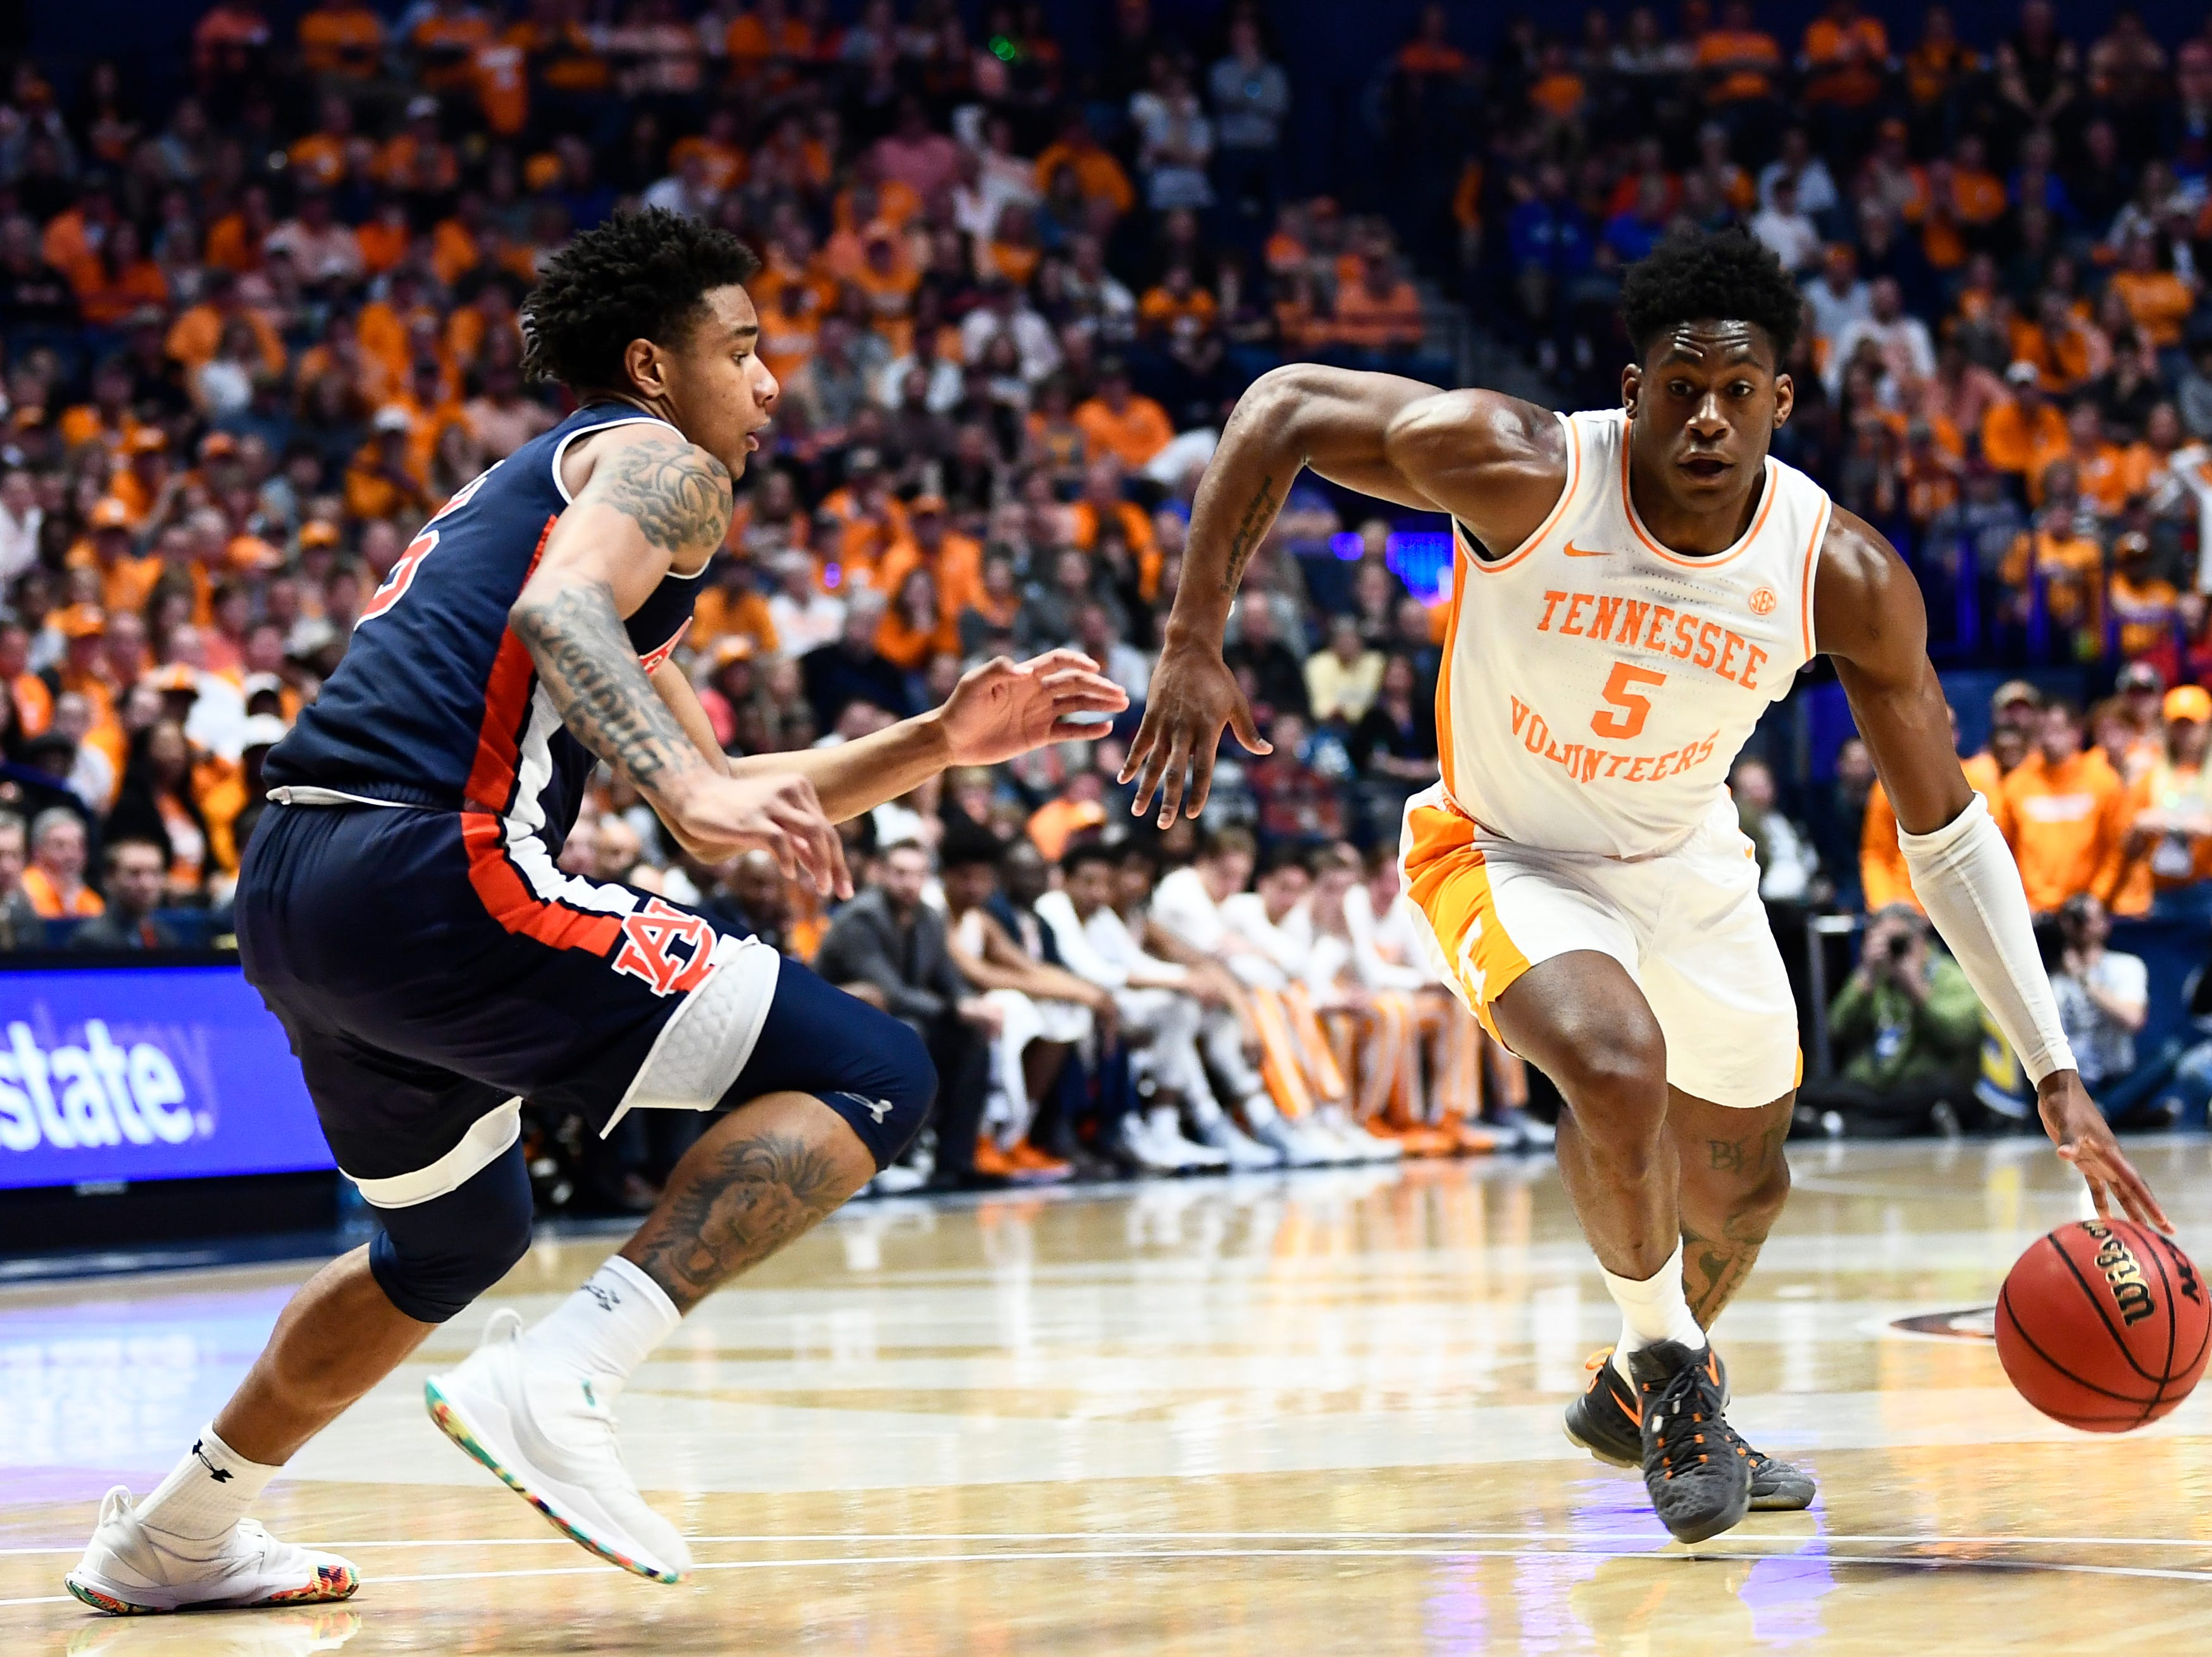 Tennessee guard Admiral Schofield (5) drives towards the court during the XXXXX half of the SEC Men's Basketball Tournament championship game at Bridgestone Arena in Nashville, Tenn., Sunday, March 17, 2019.